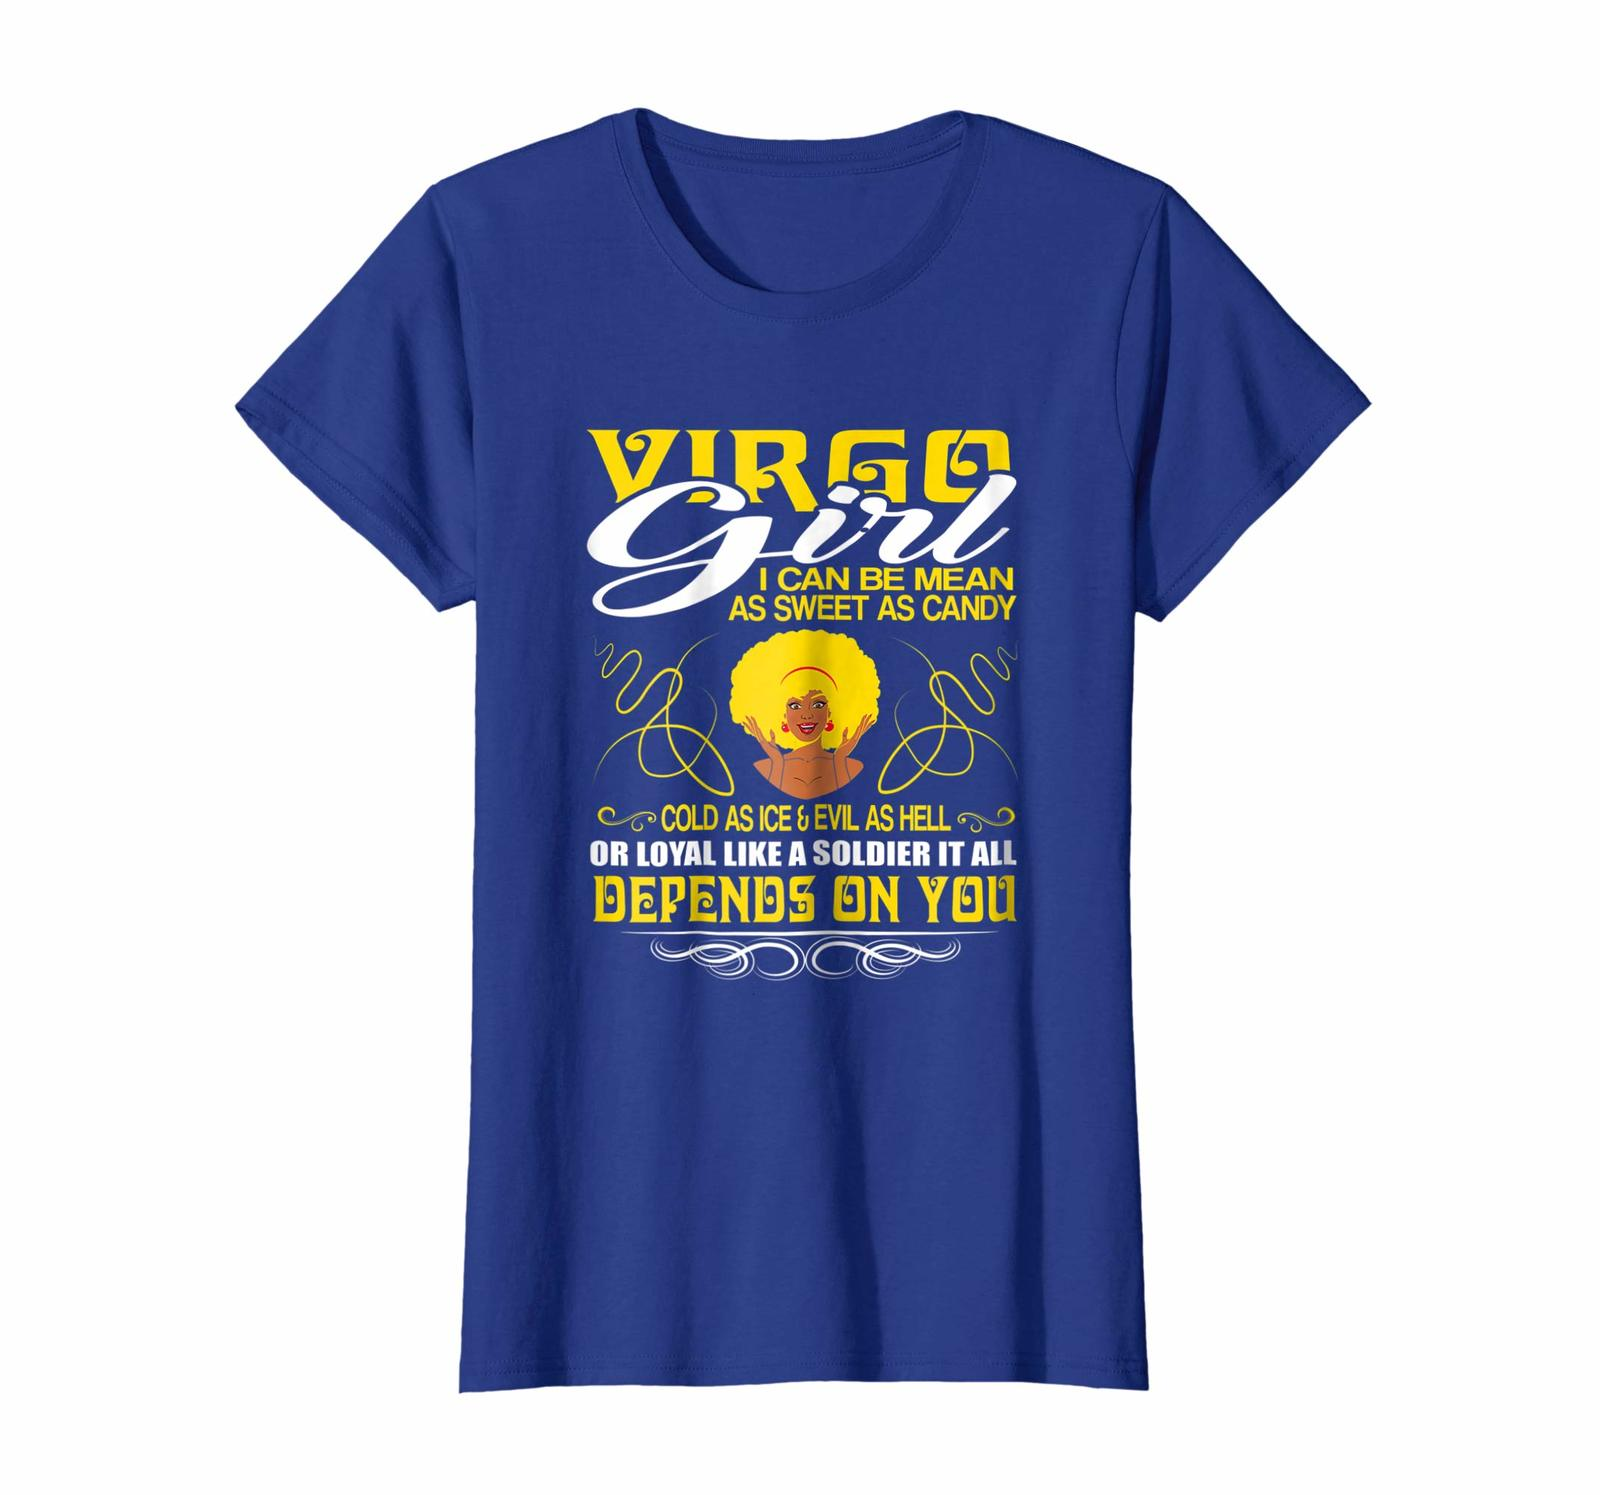 Funny Happy birthday T-Shirt - Virgo Girl I Can Be Mean It All Depends On You Gi